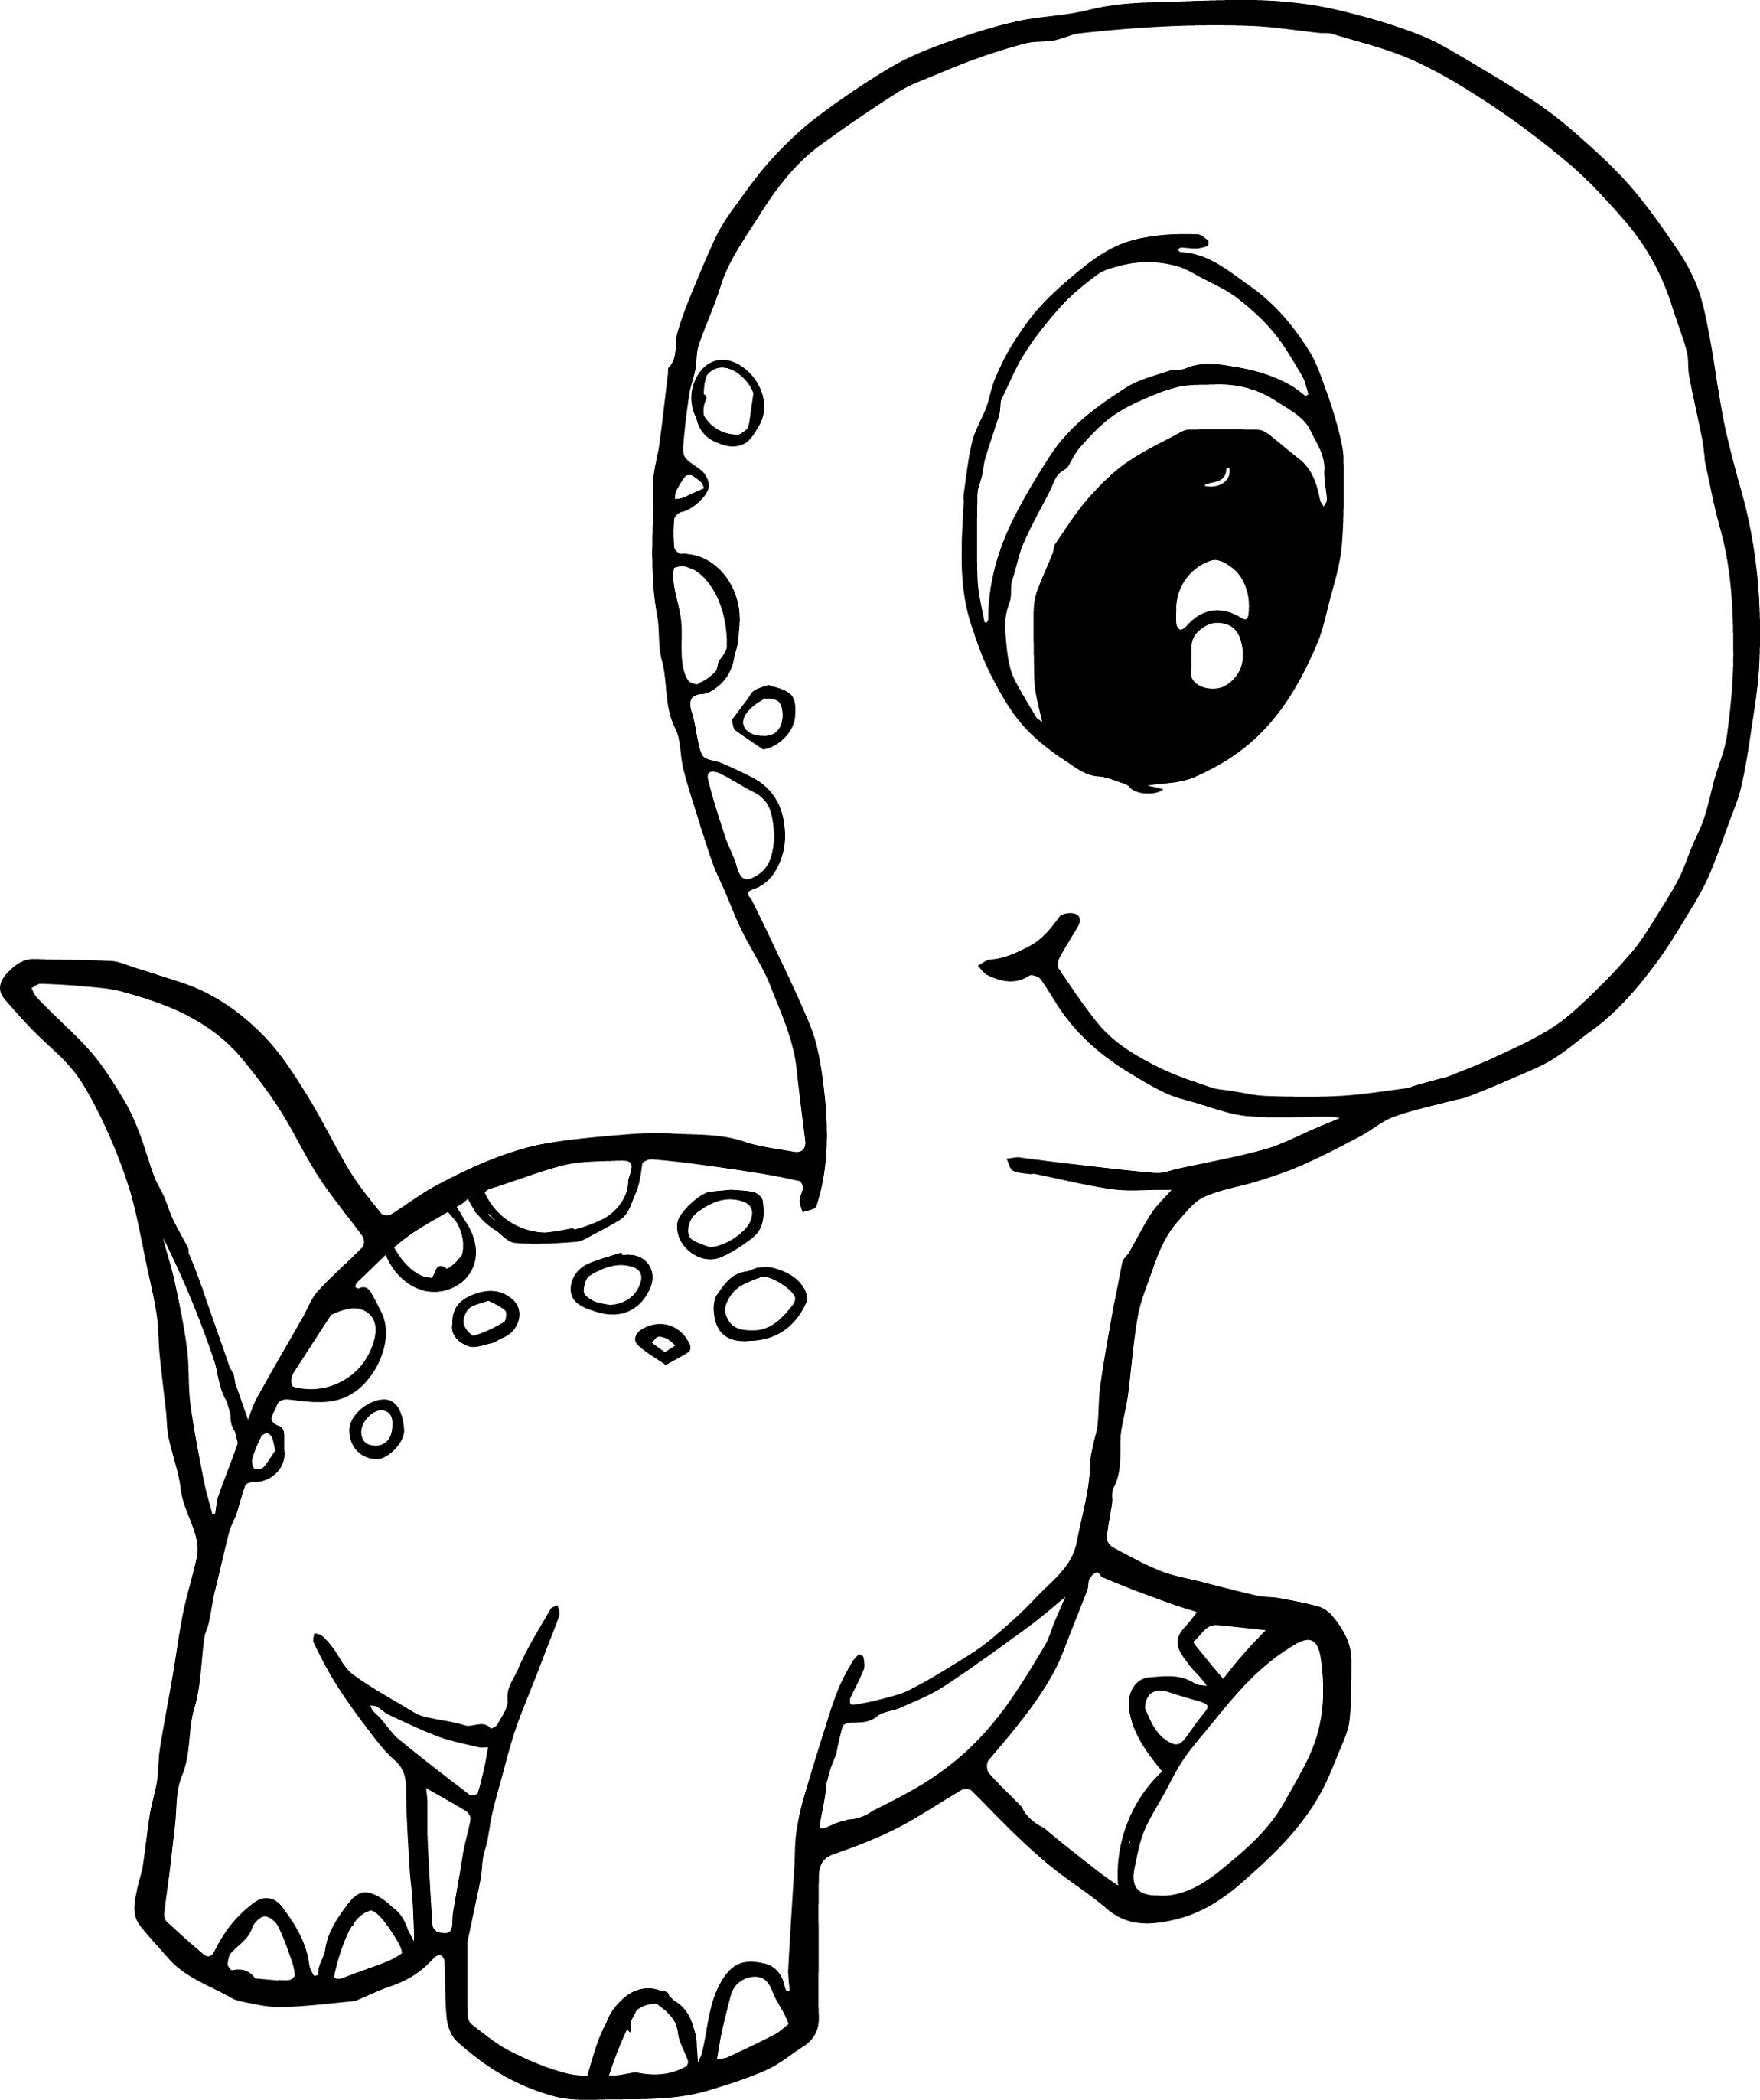 dinosaurs colouring pages dinosaur 12 coloringcolorcom dinosaurs colouring pages